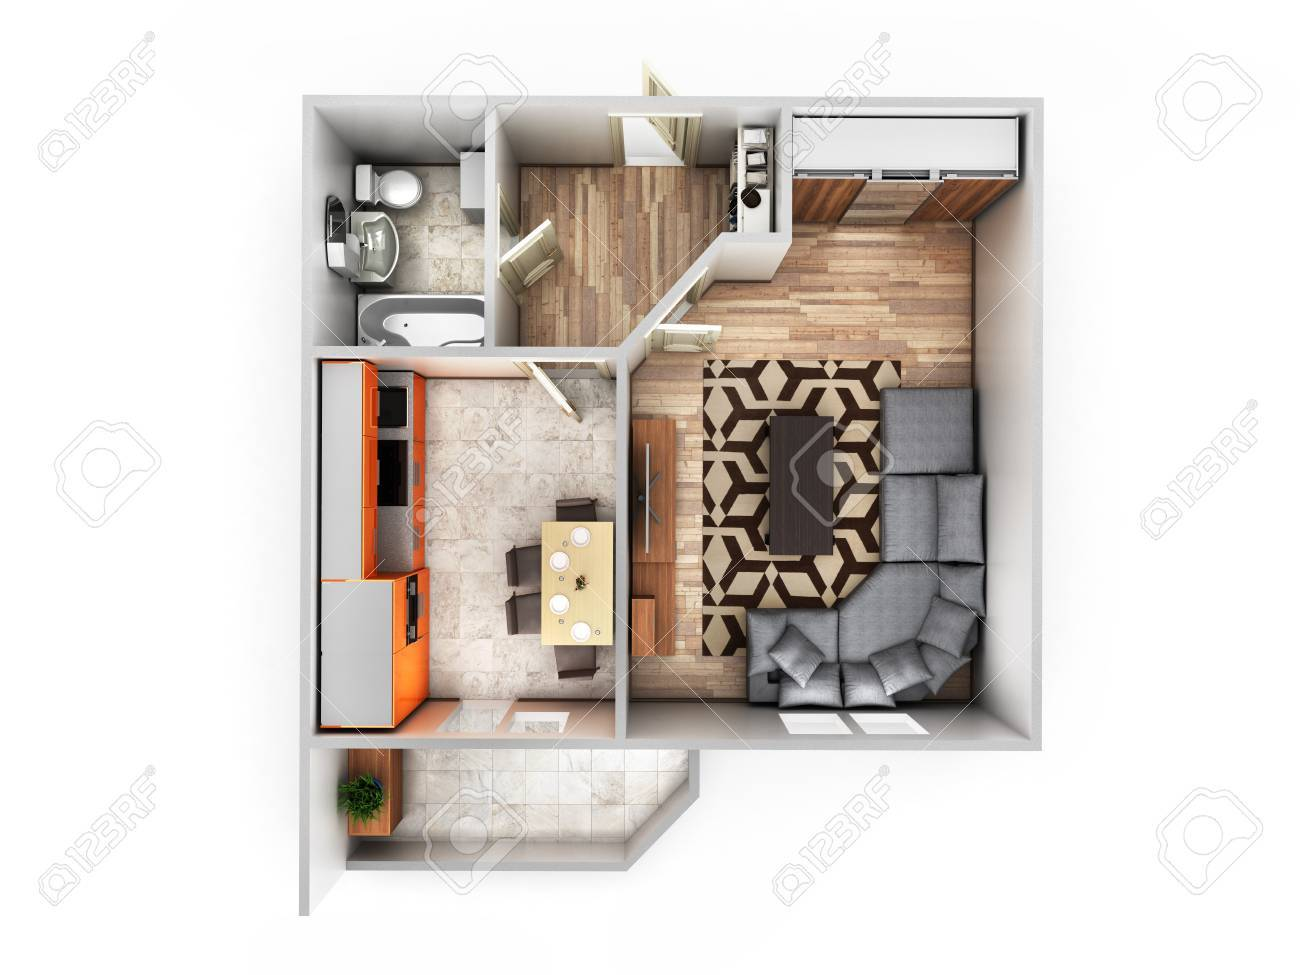 Interior Apartment Roofless Top View Apartment Layout 3d Render Stock Photo    85508765